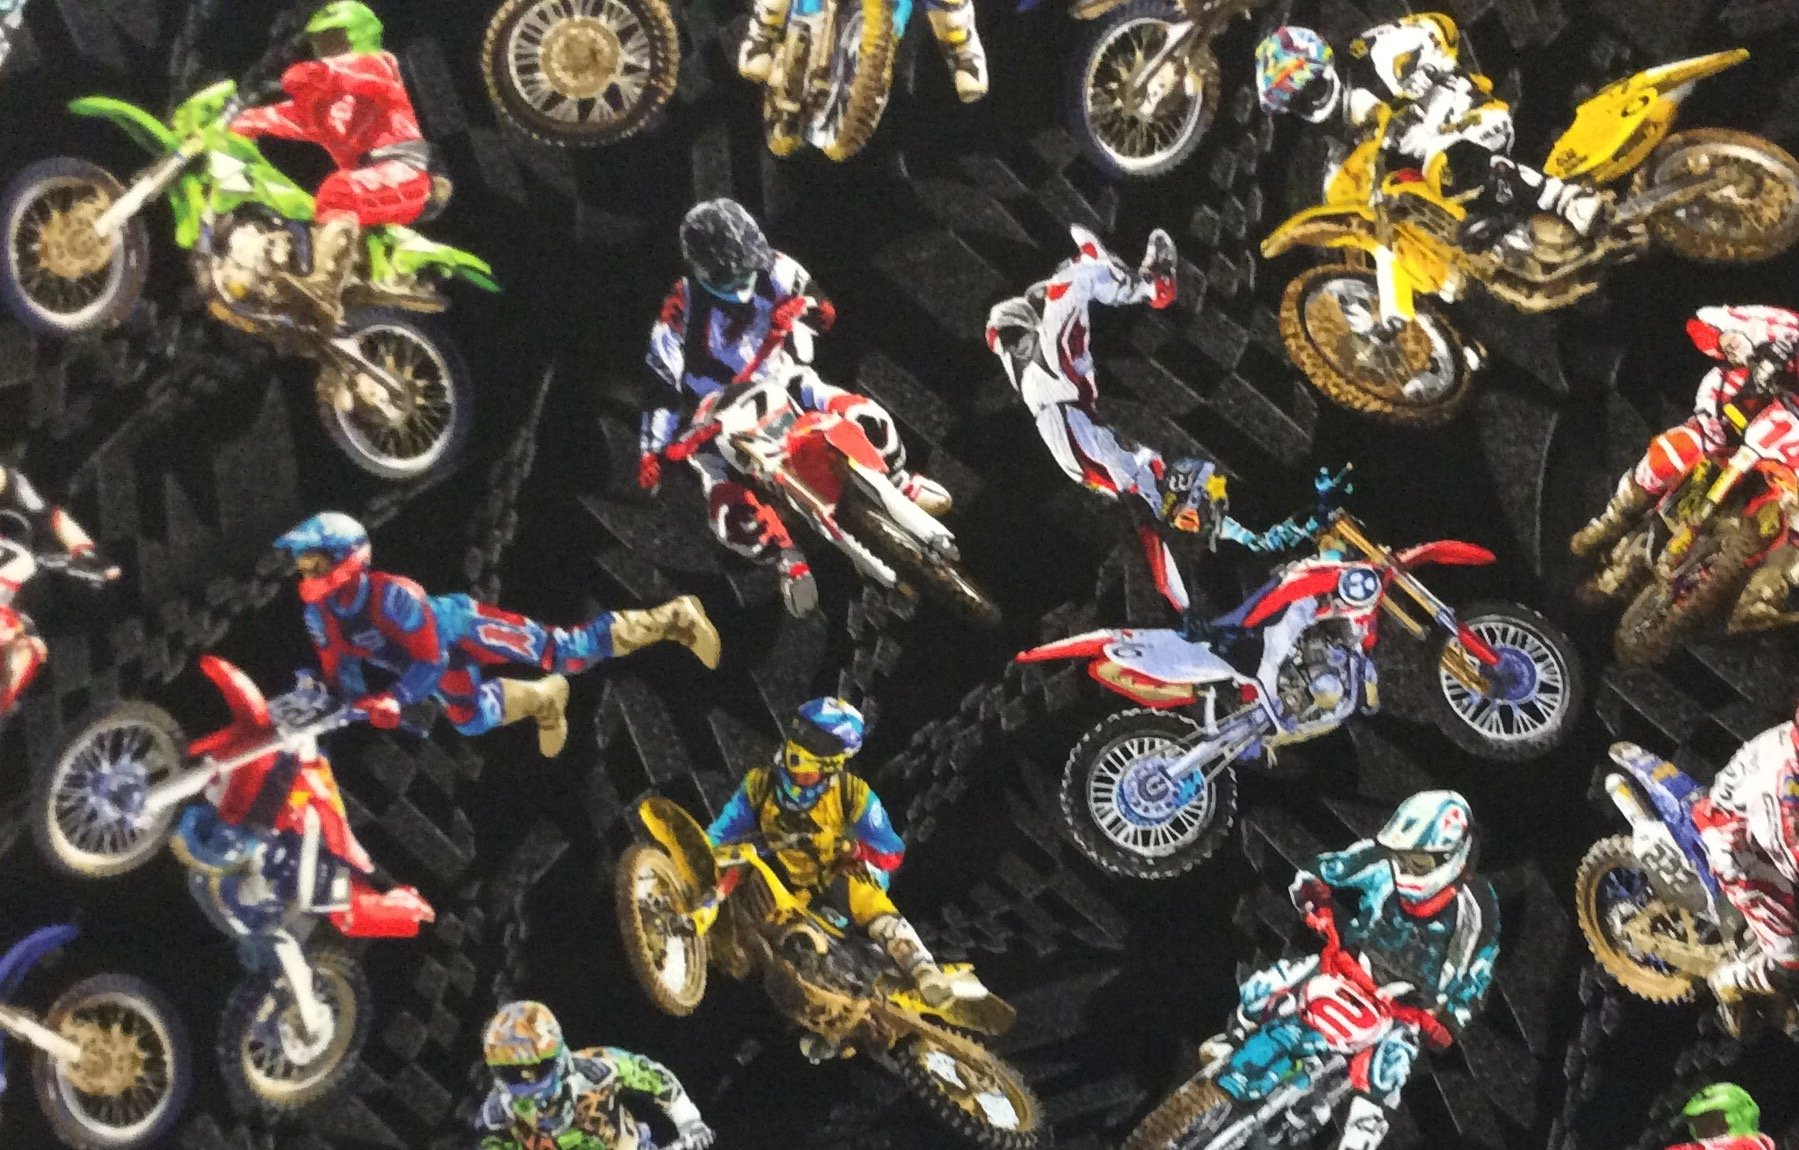 BE06 Motorcycle Dirt Bike Racing Motocross Sport Harley Quilting Cotton Fabric